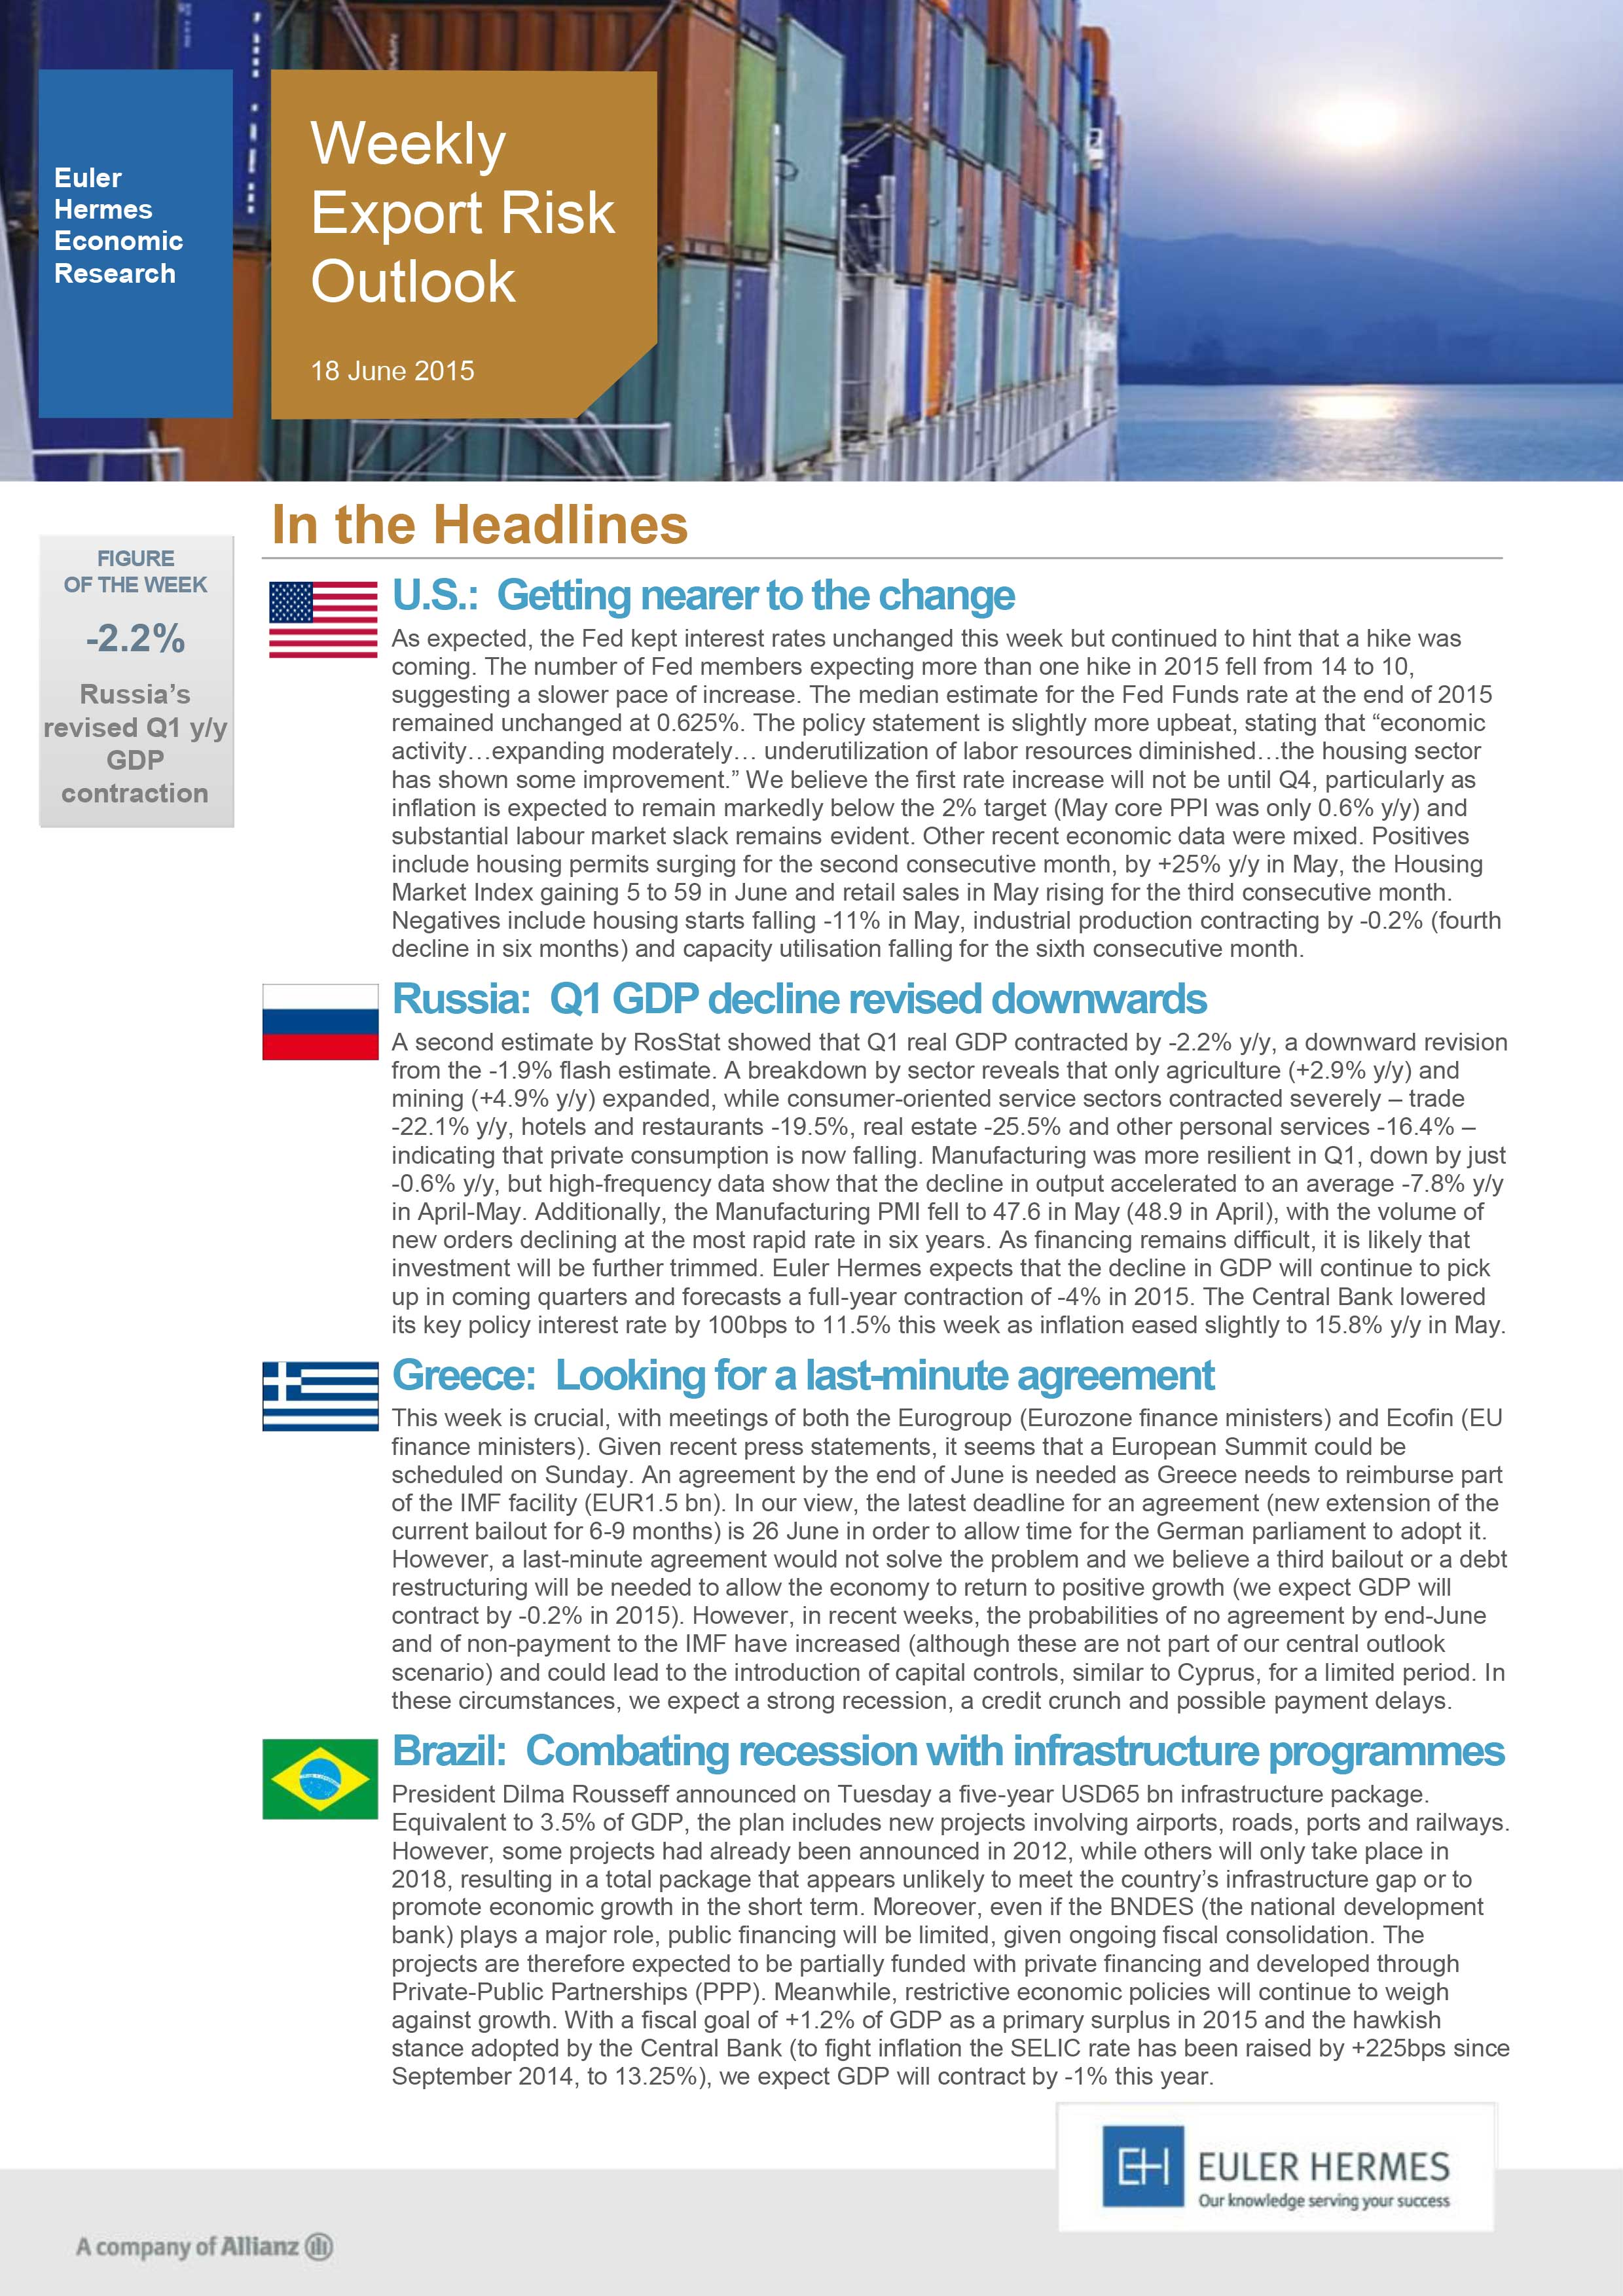 2015_06_18_Weekly_Export_Risk_Outlook-n24-1